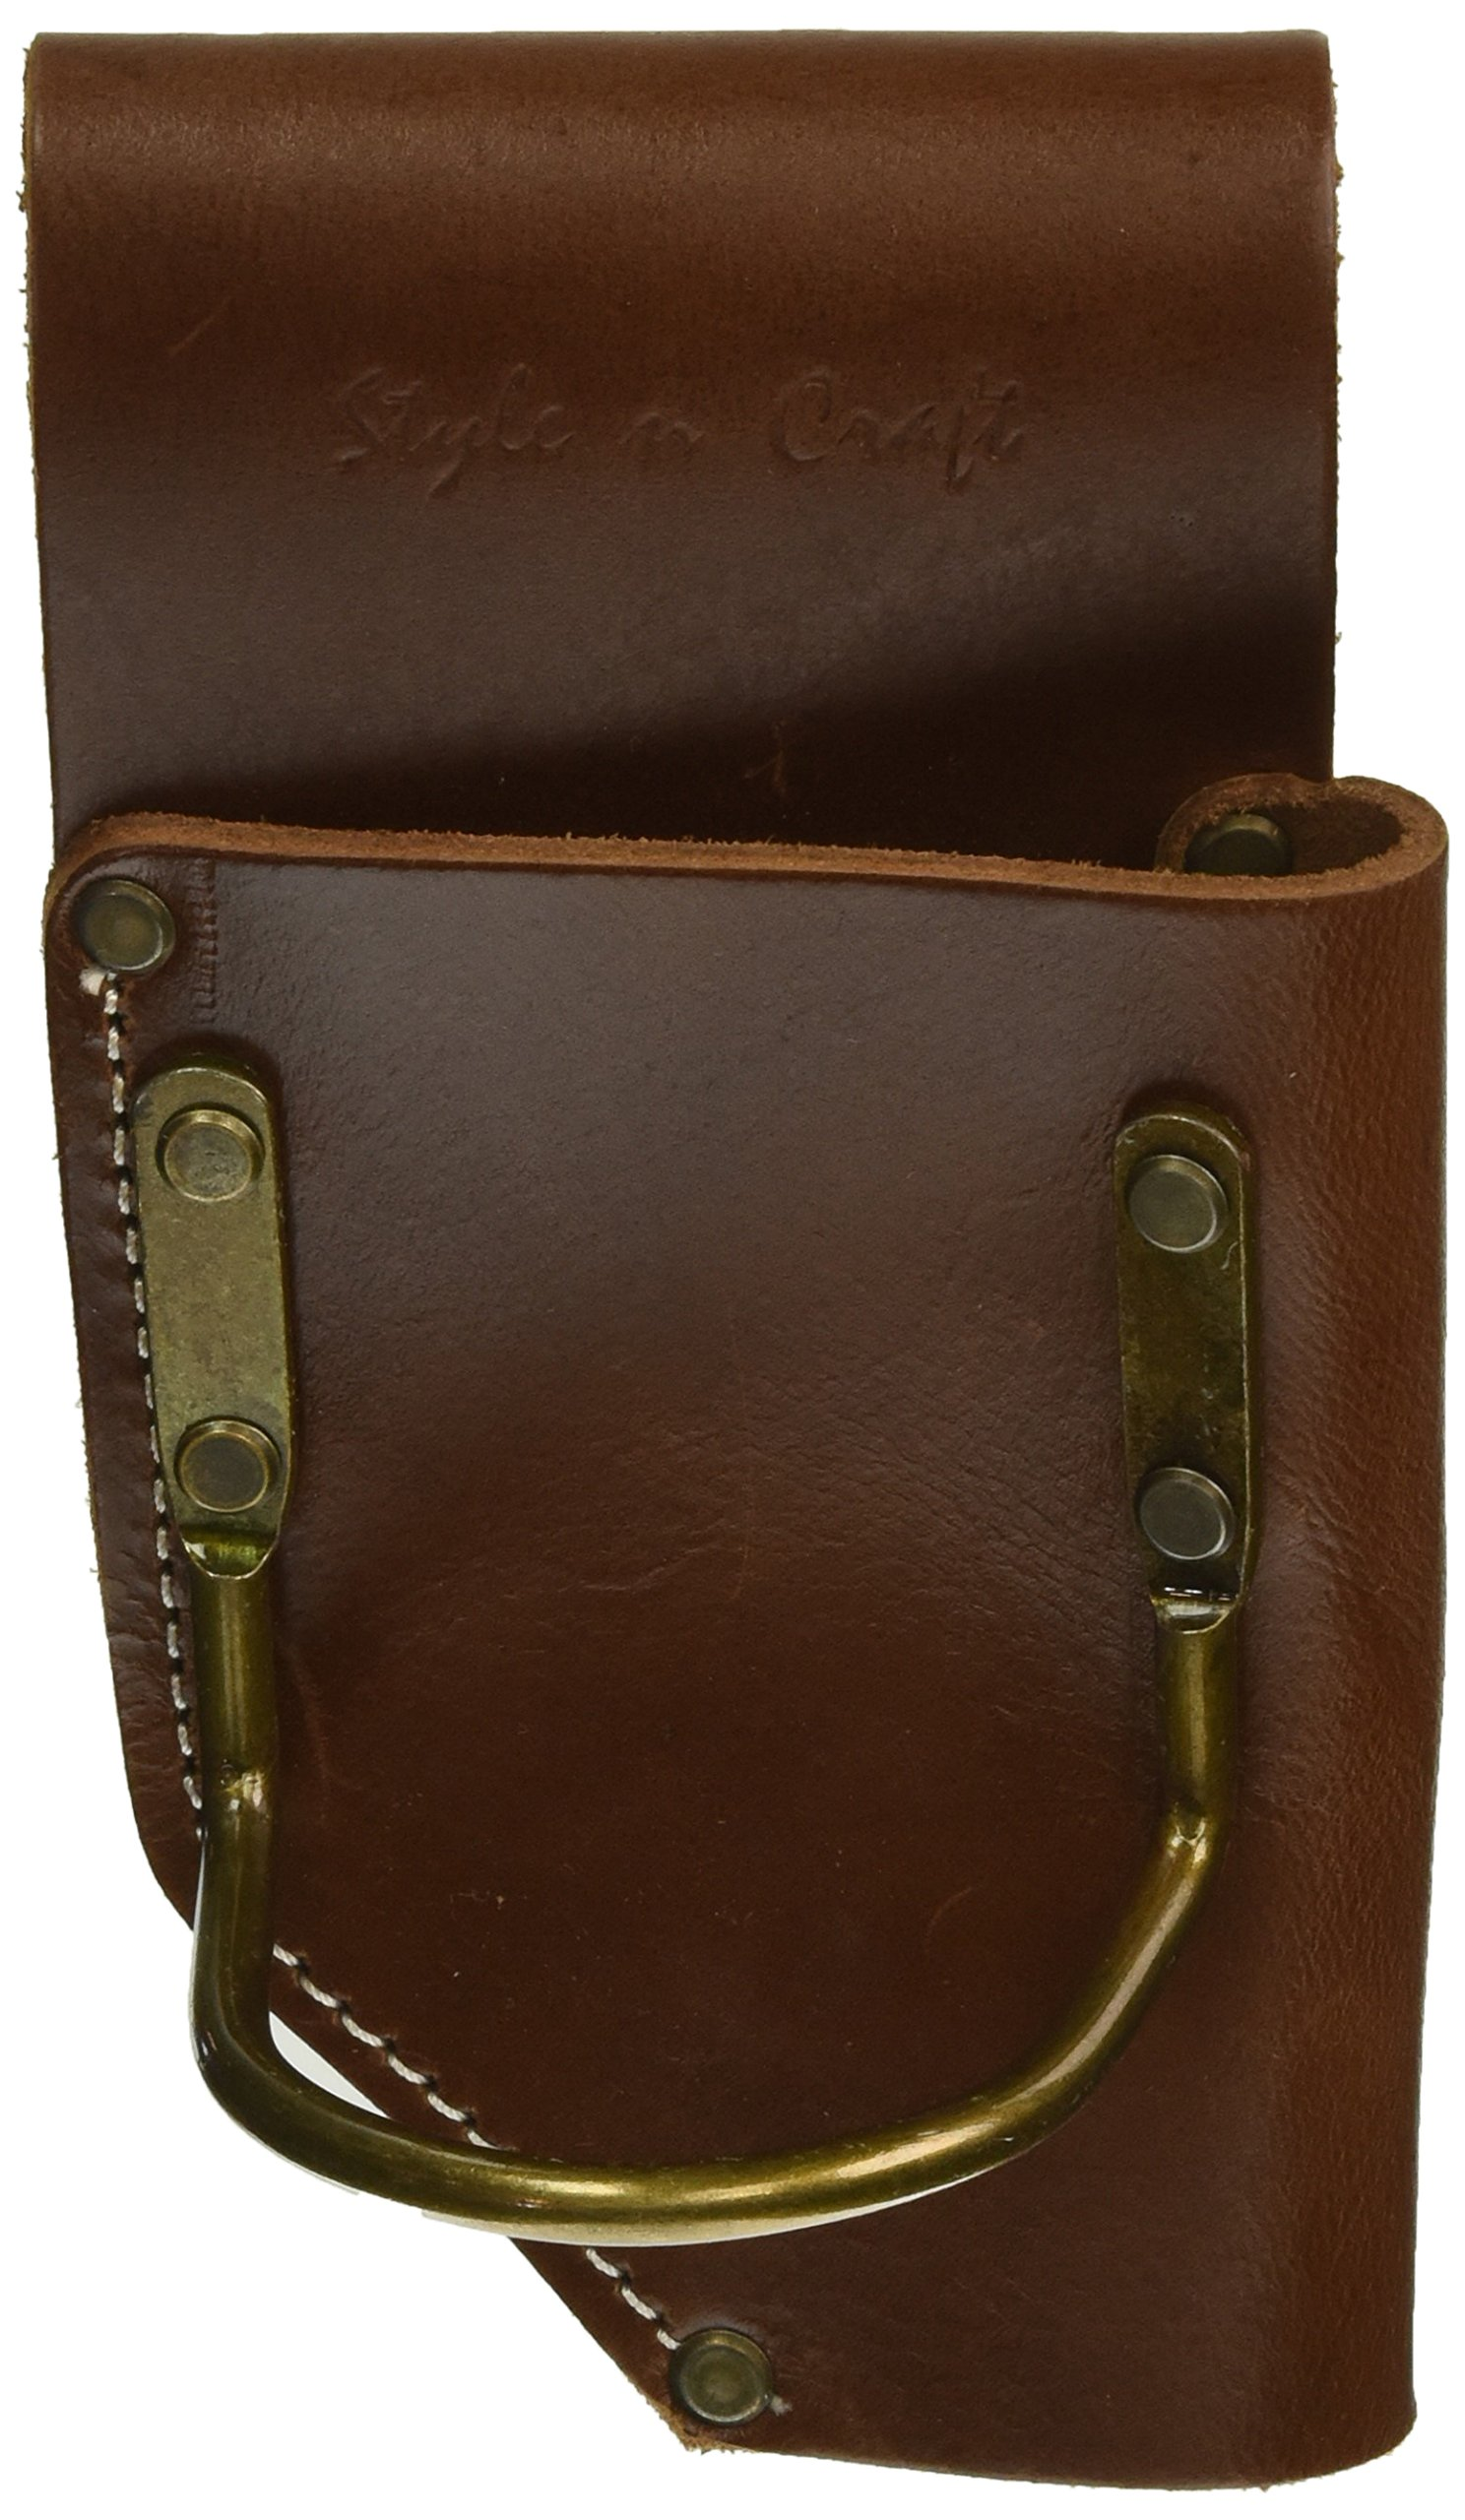 Style n Craft 98450 Pliers and Hammer Holder in Heavy Top Grain Leather, Dark Tan